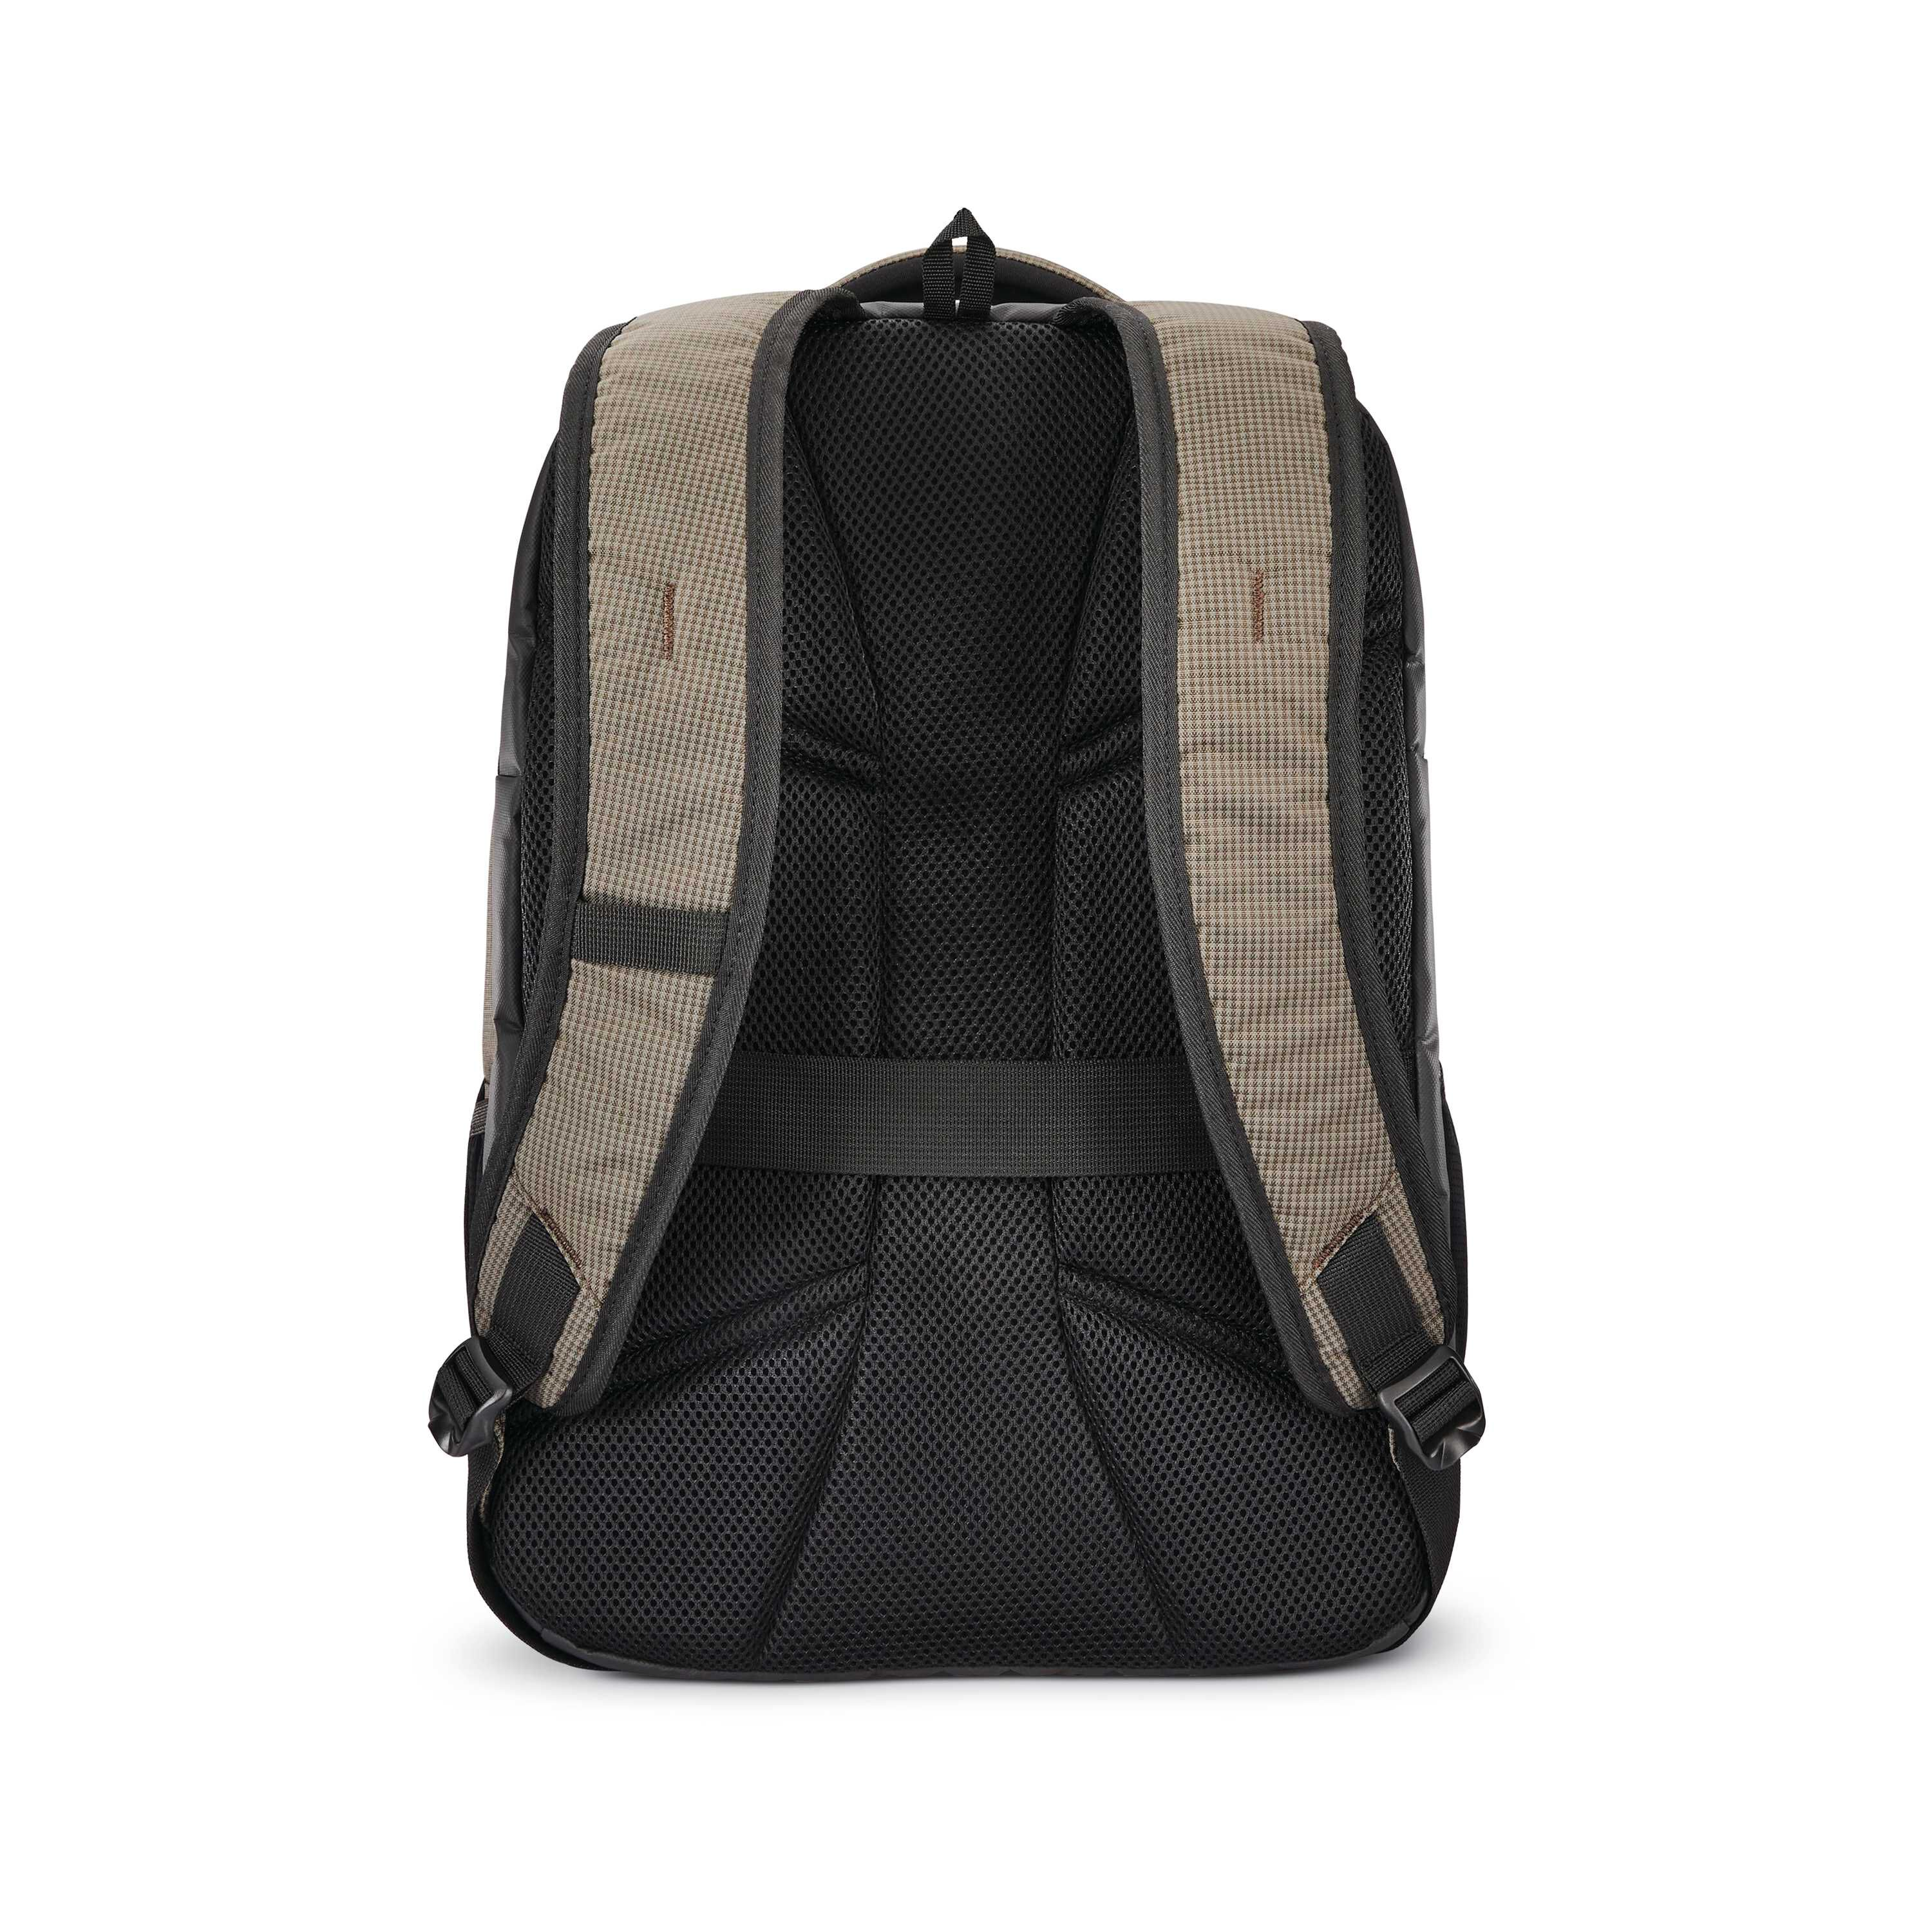 Green//Black Samsonite Tectonic Lifestyle Crossfire Business Backpack One Size